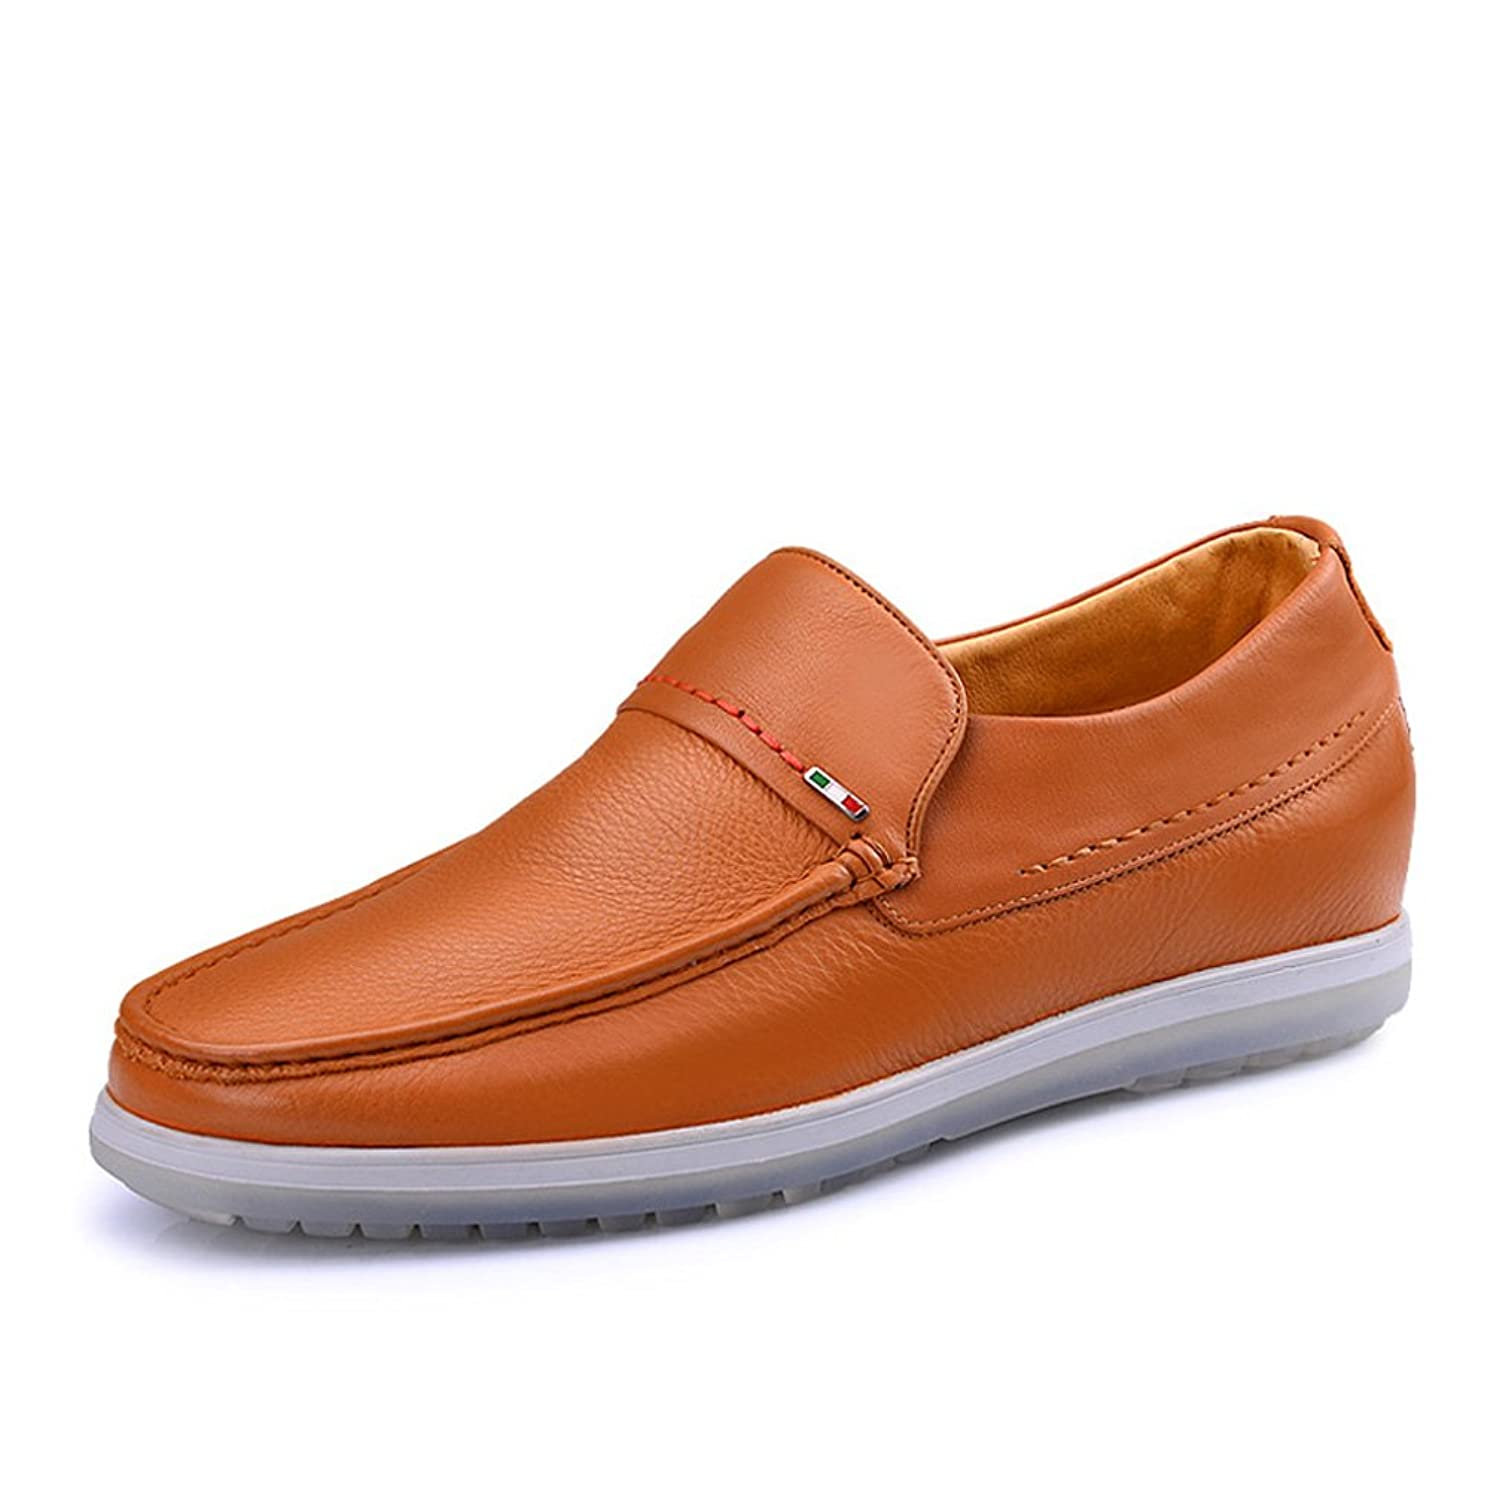 2.36 Inches Taller-Men's Comfort Driving Car Shoes Soft Leather Flats Loafers Casual Walking Shoes Yellow